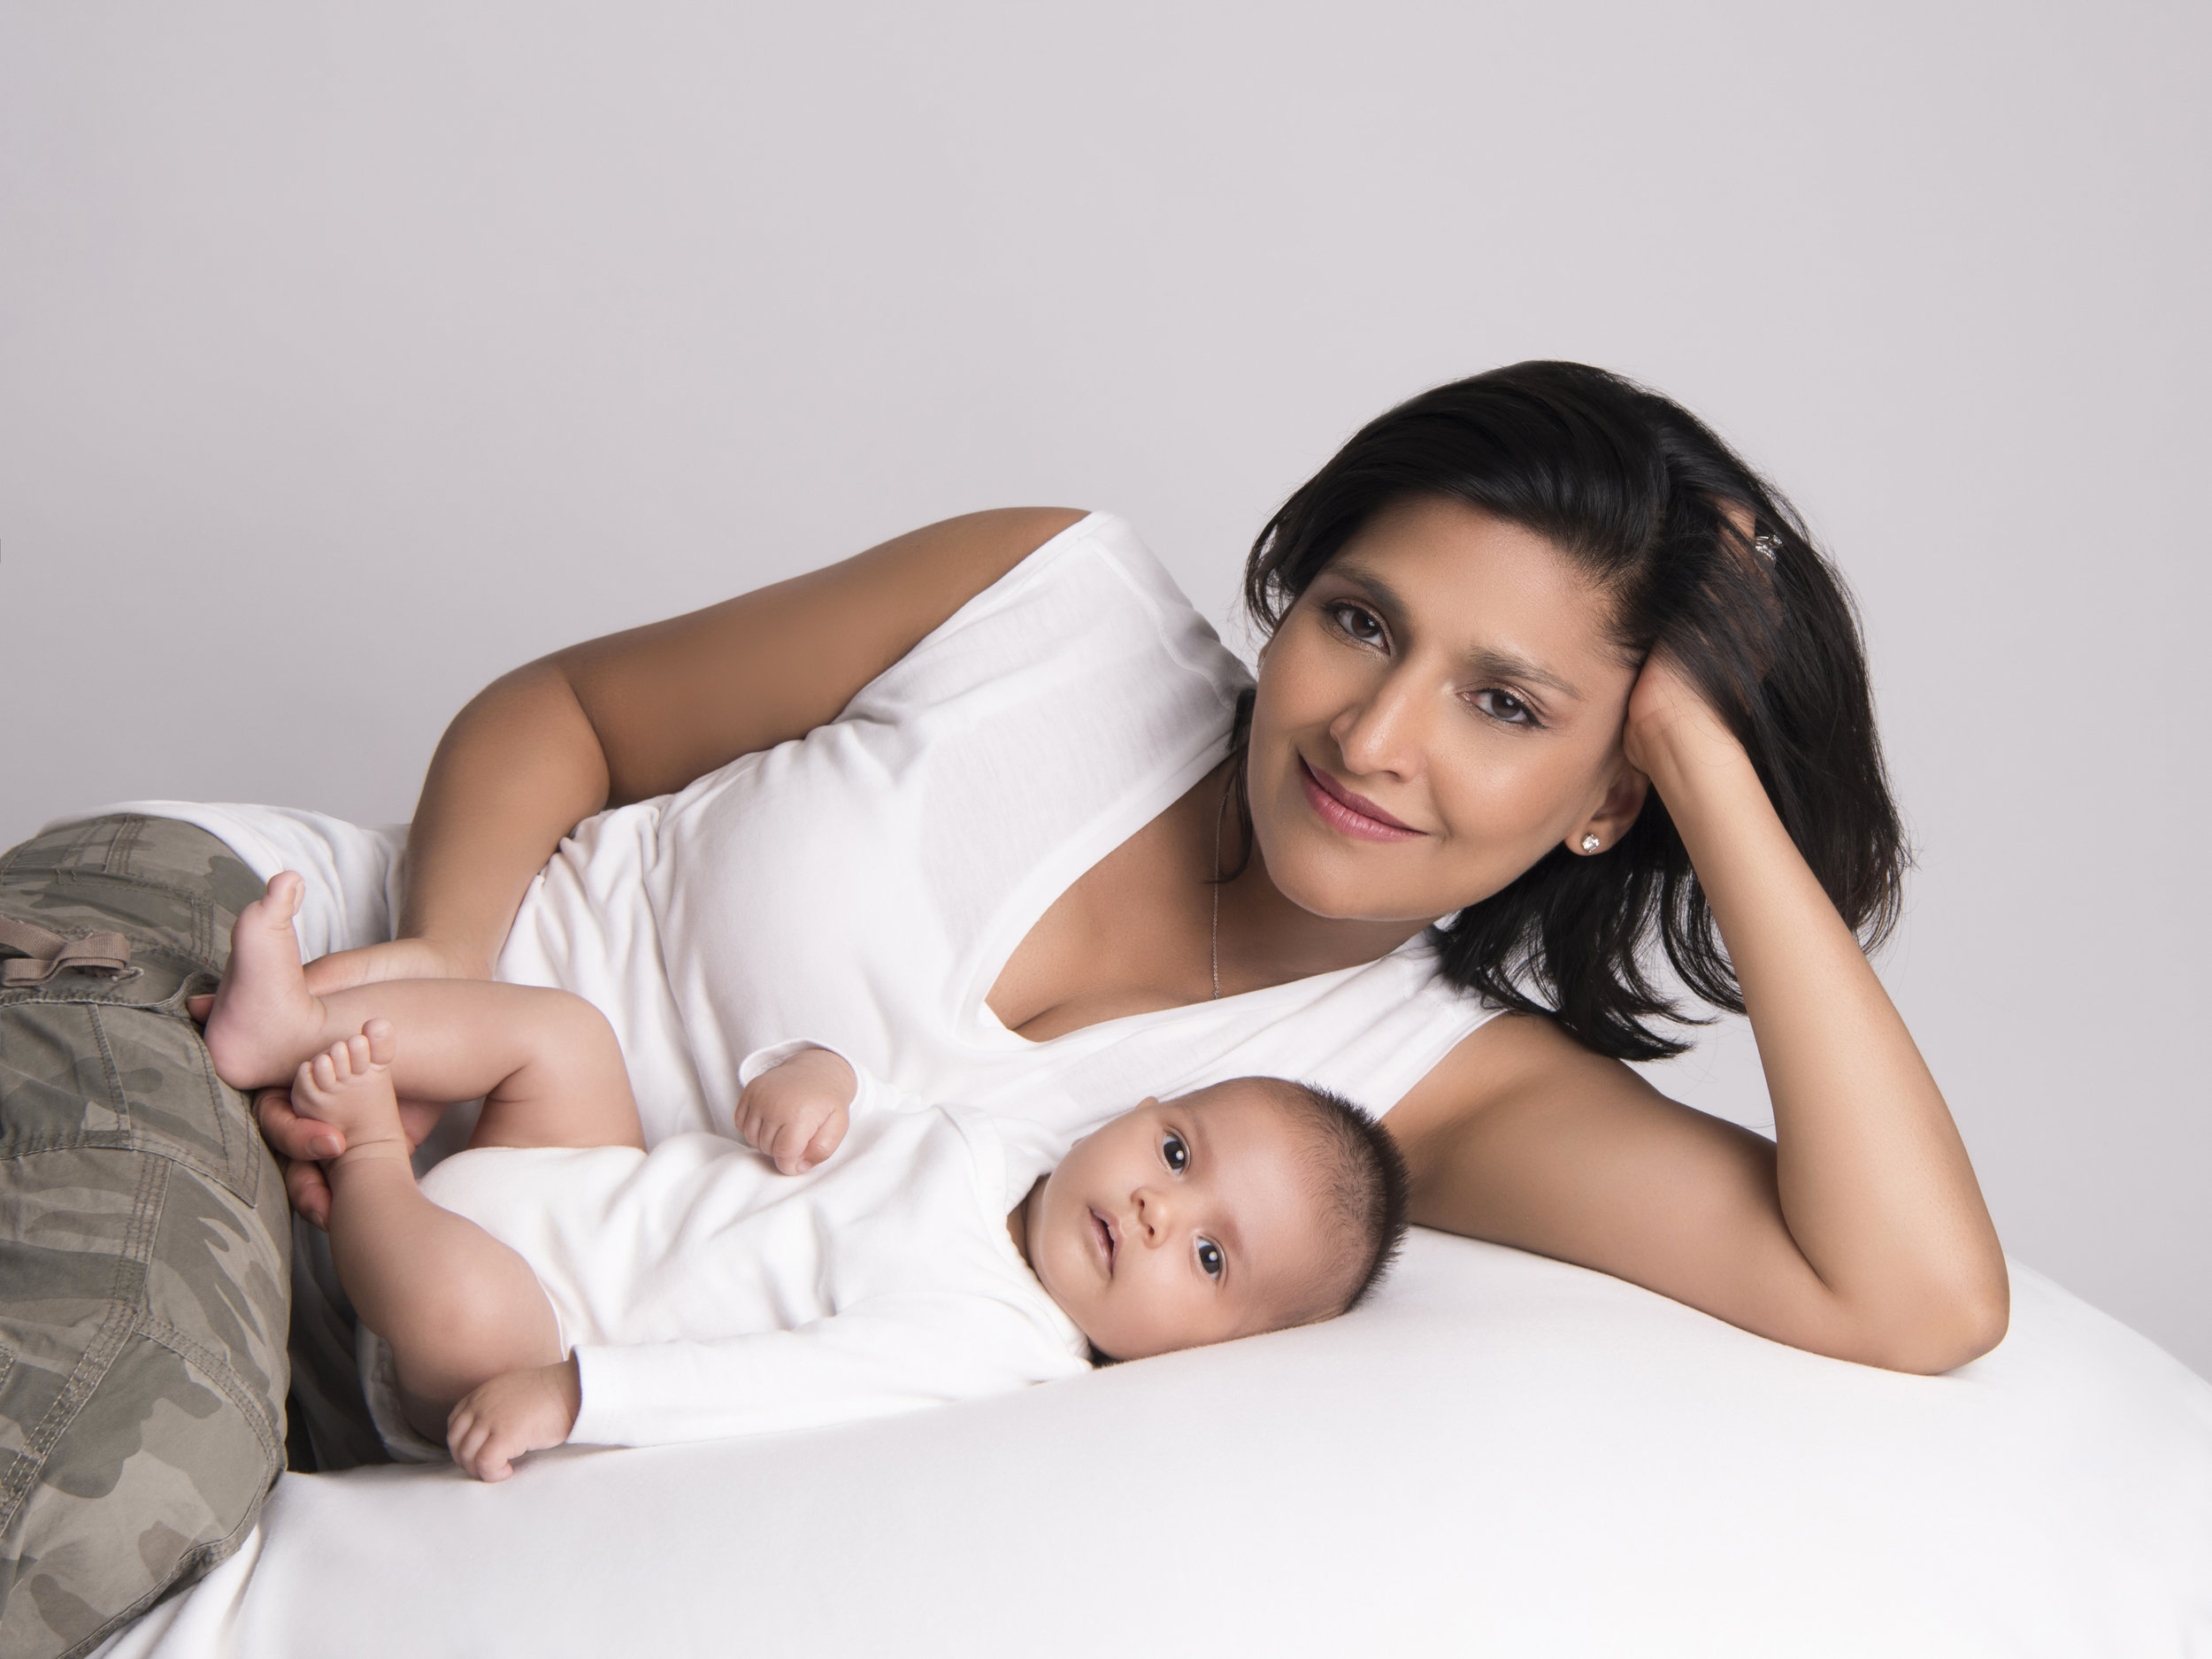 baby-photo-shoot-Central-London.jpg